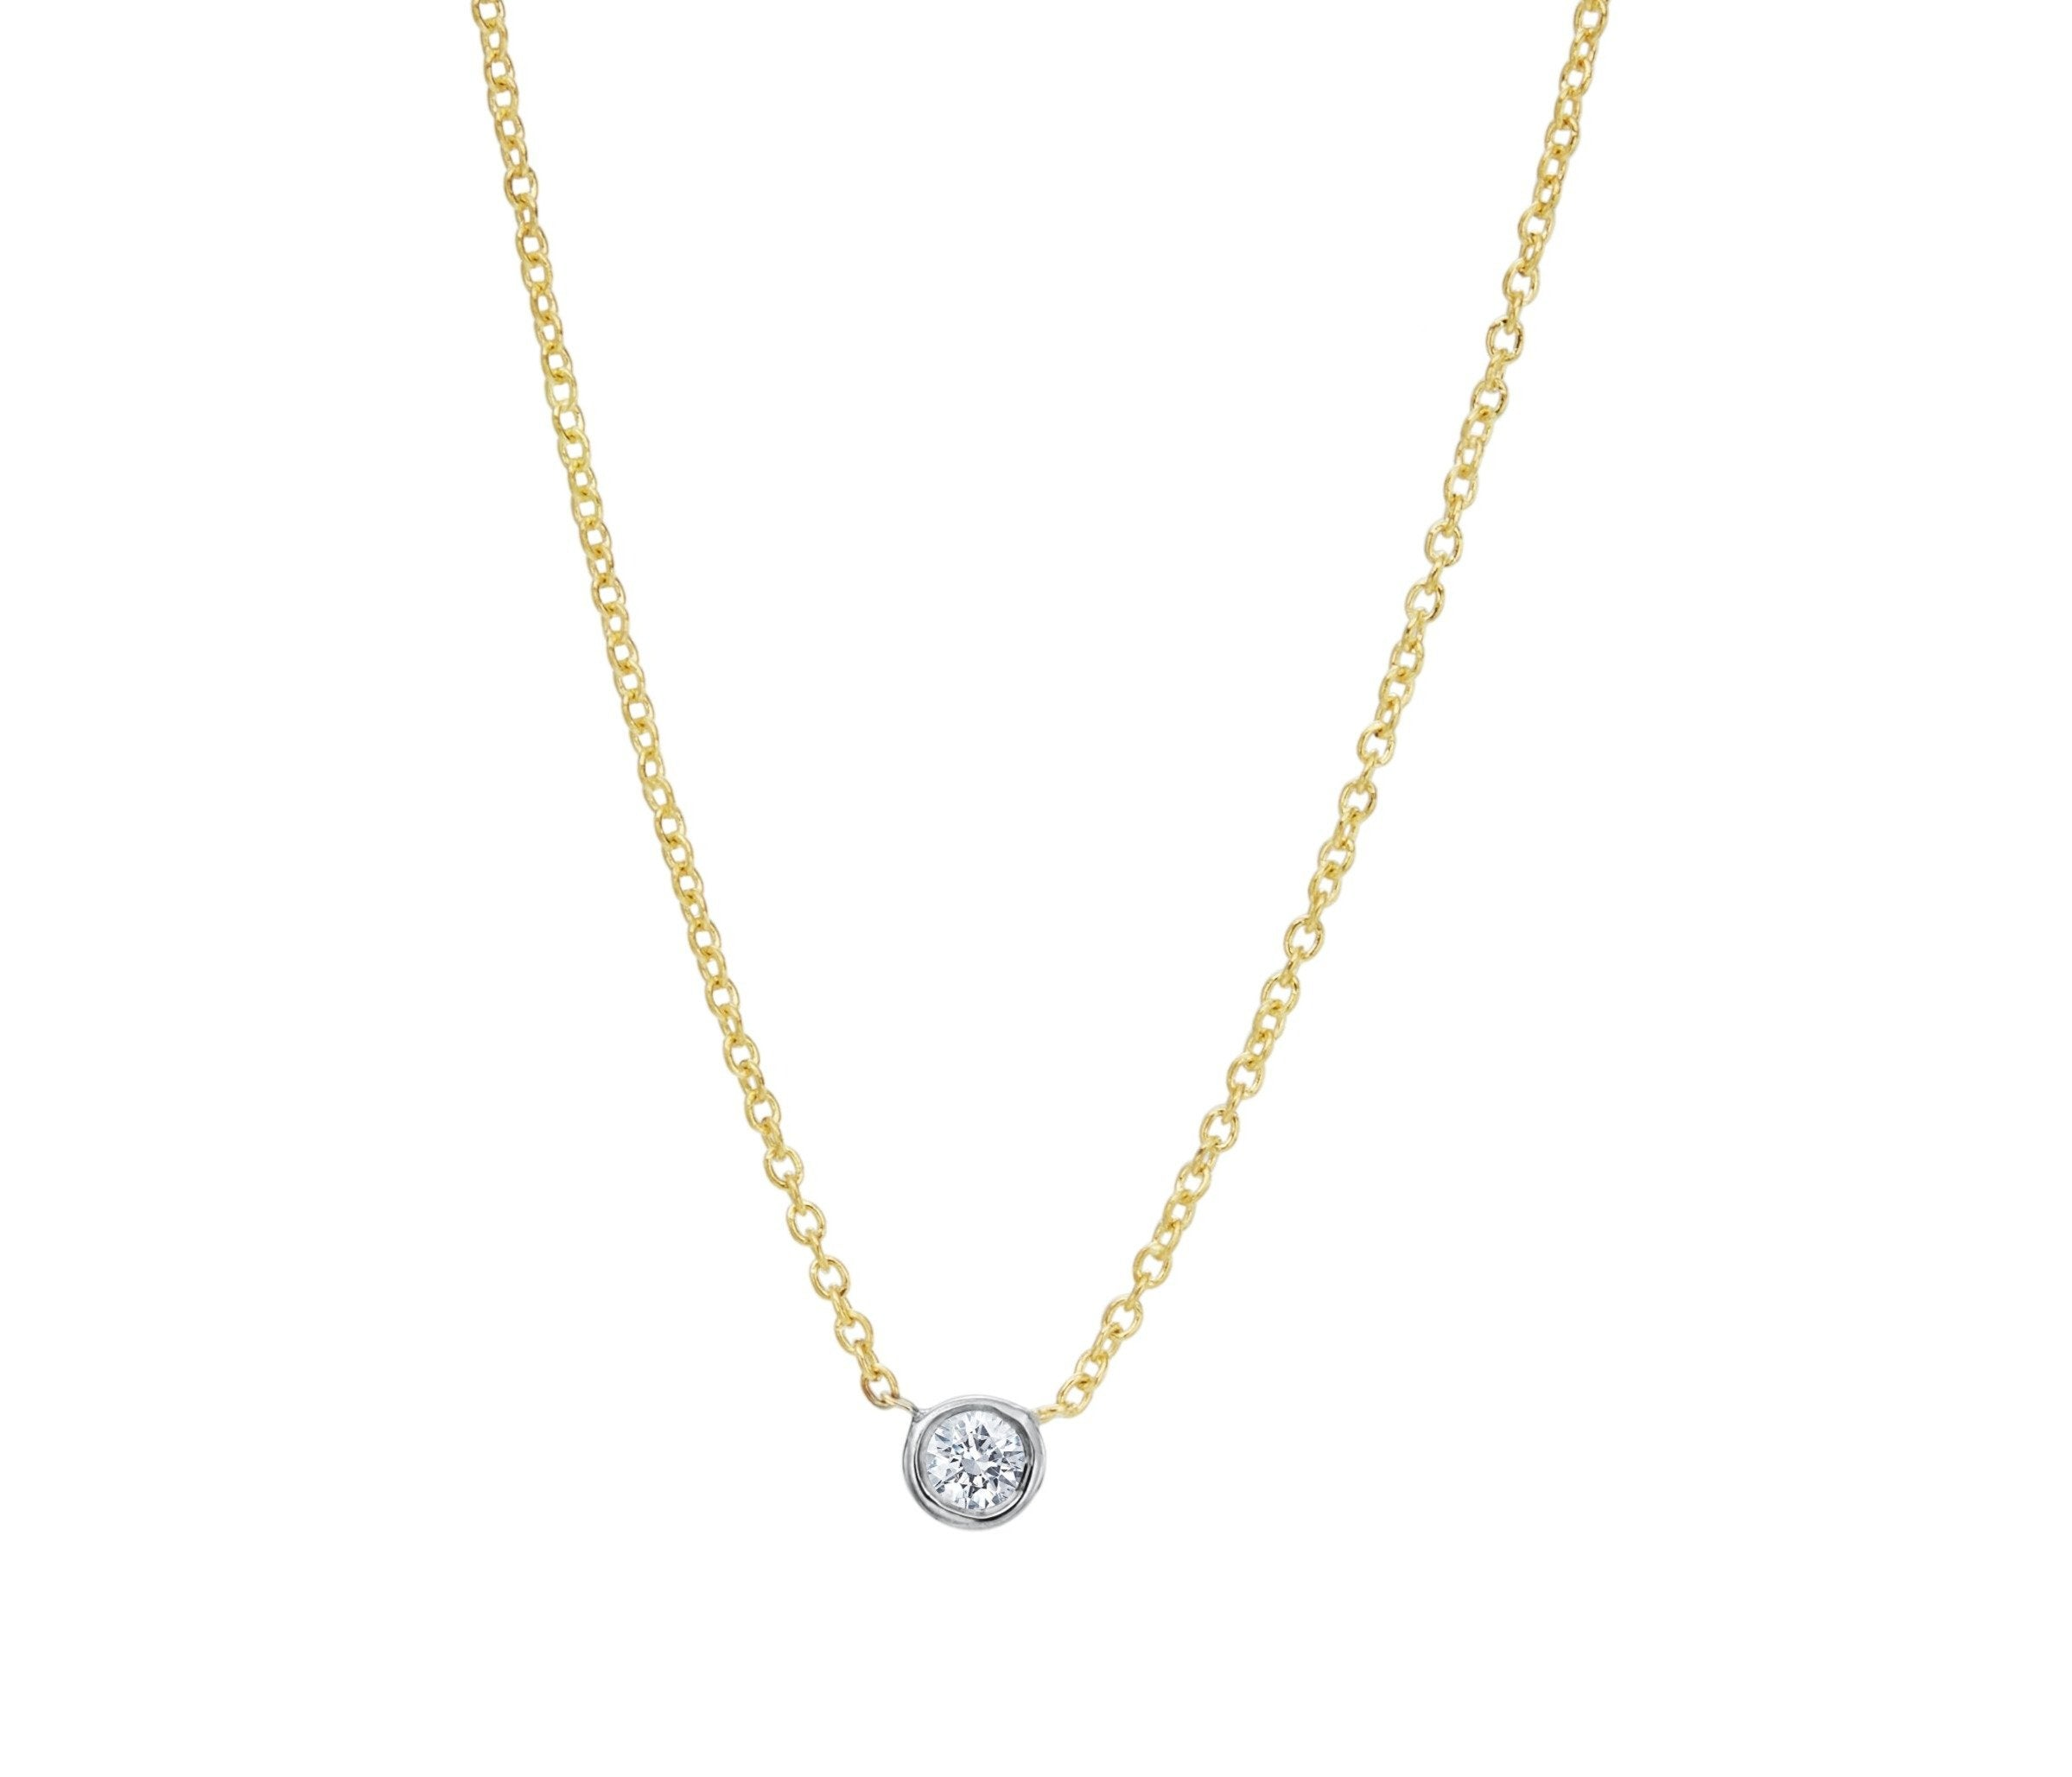 Single .10 ct Diamond Bezel Necklace designed by David Gardner, 18K yellow gold